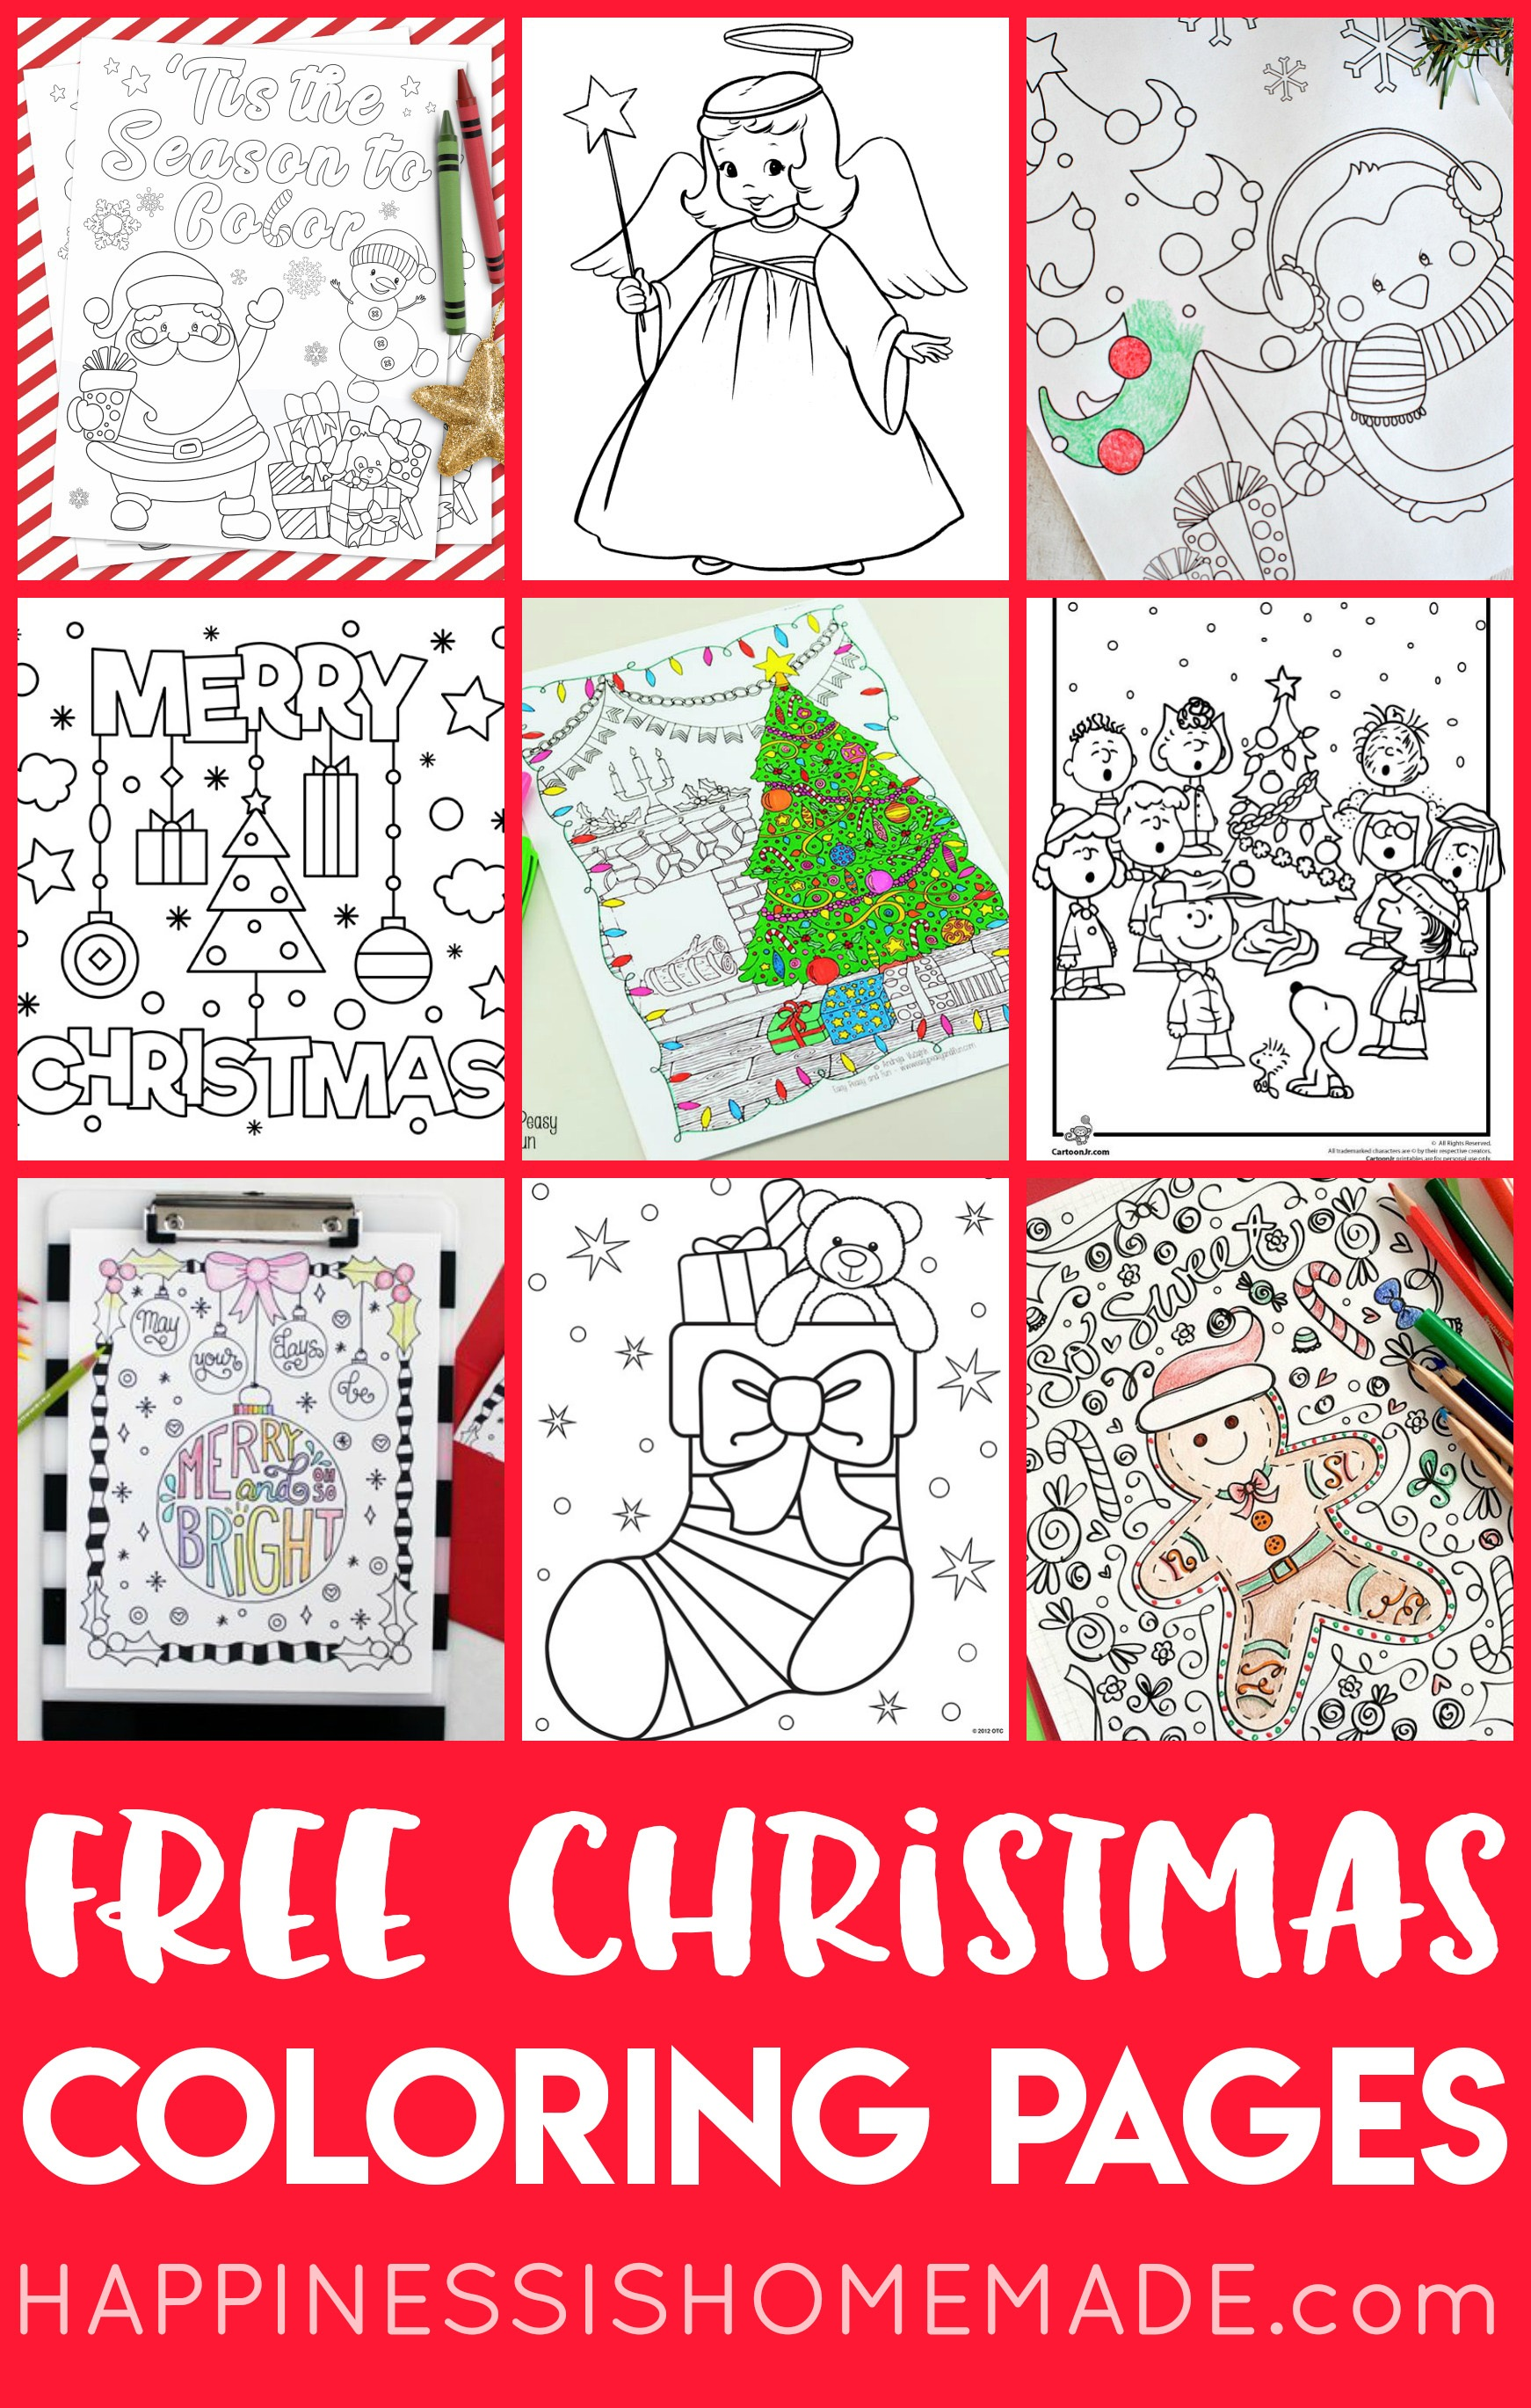 Free Christmas Coloring Pages For Adults And Kids - Happiness Is - Free Christmas Printables For Kids